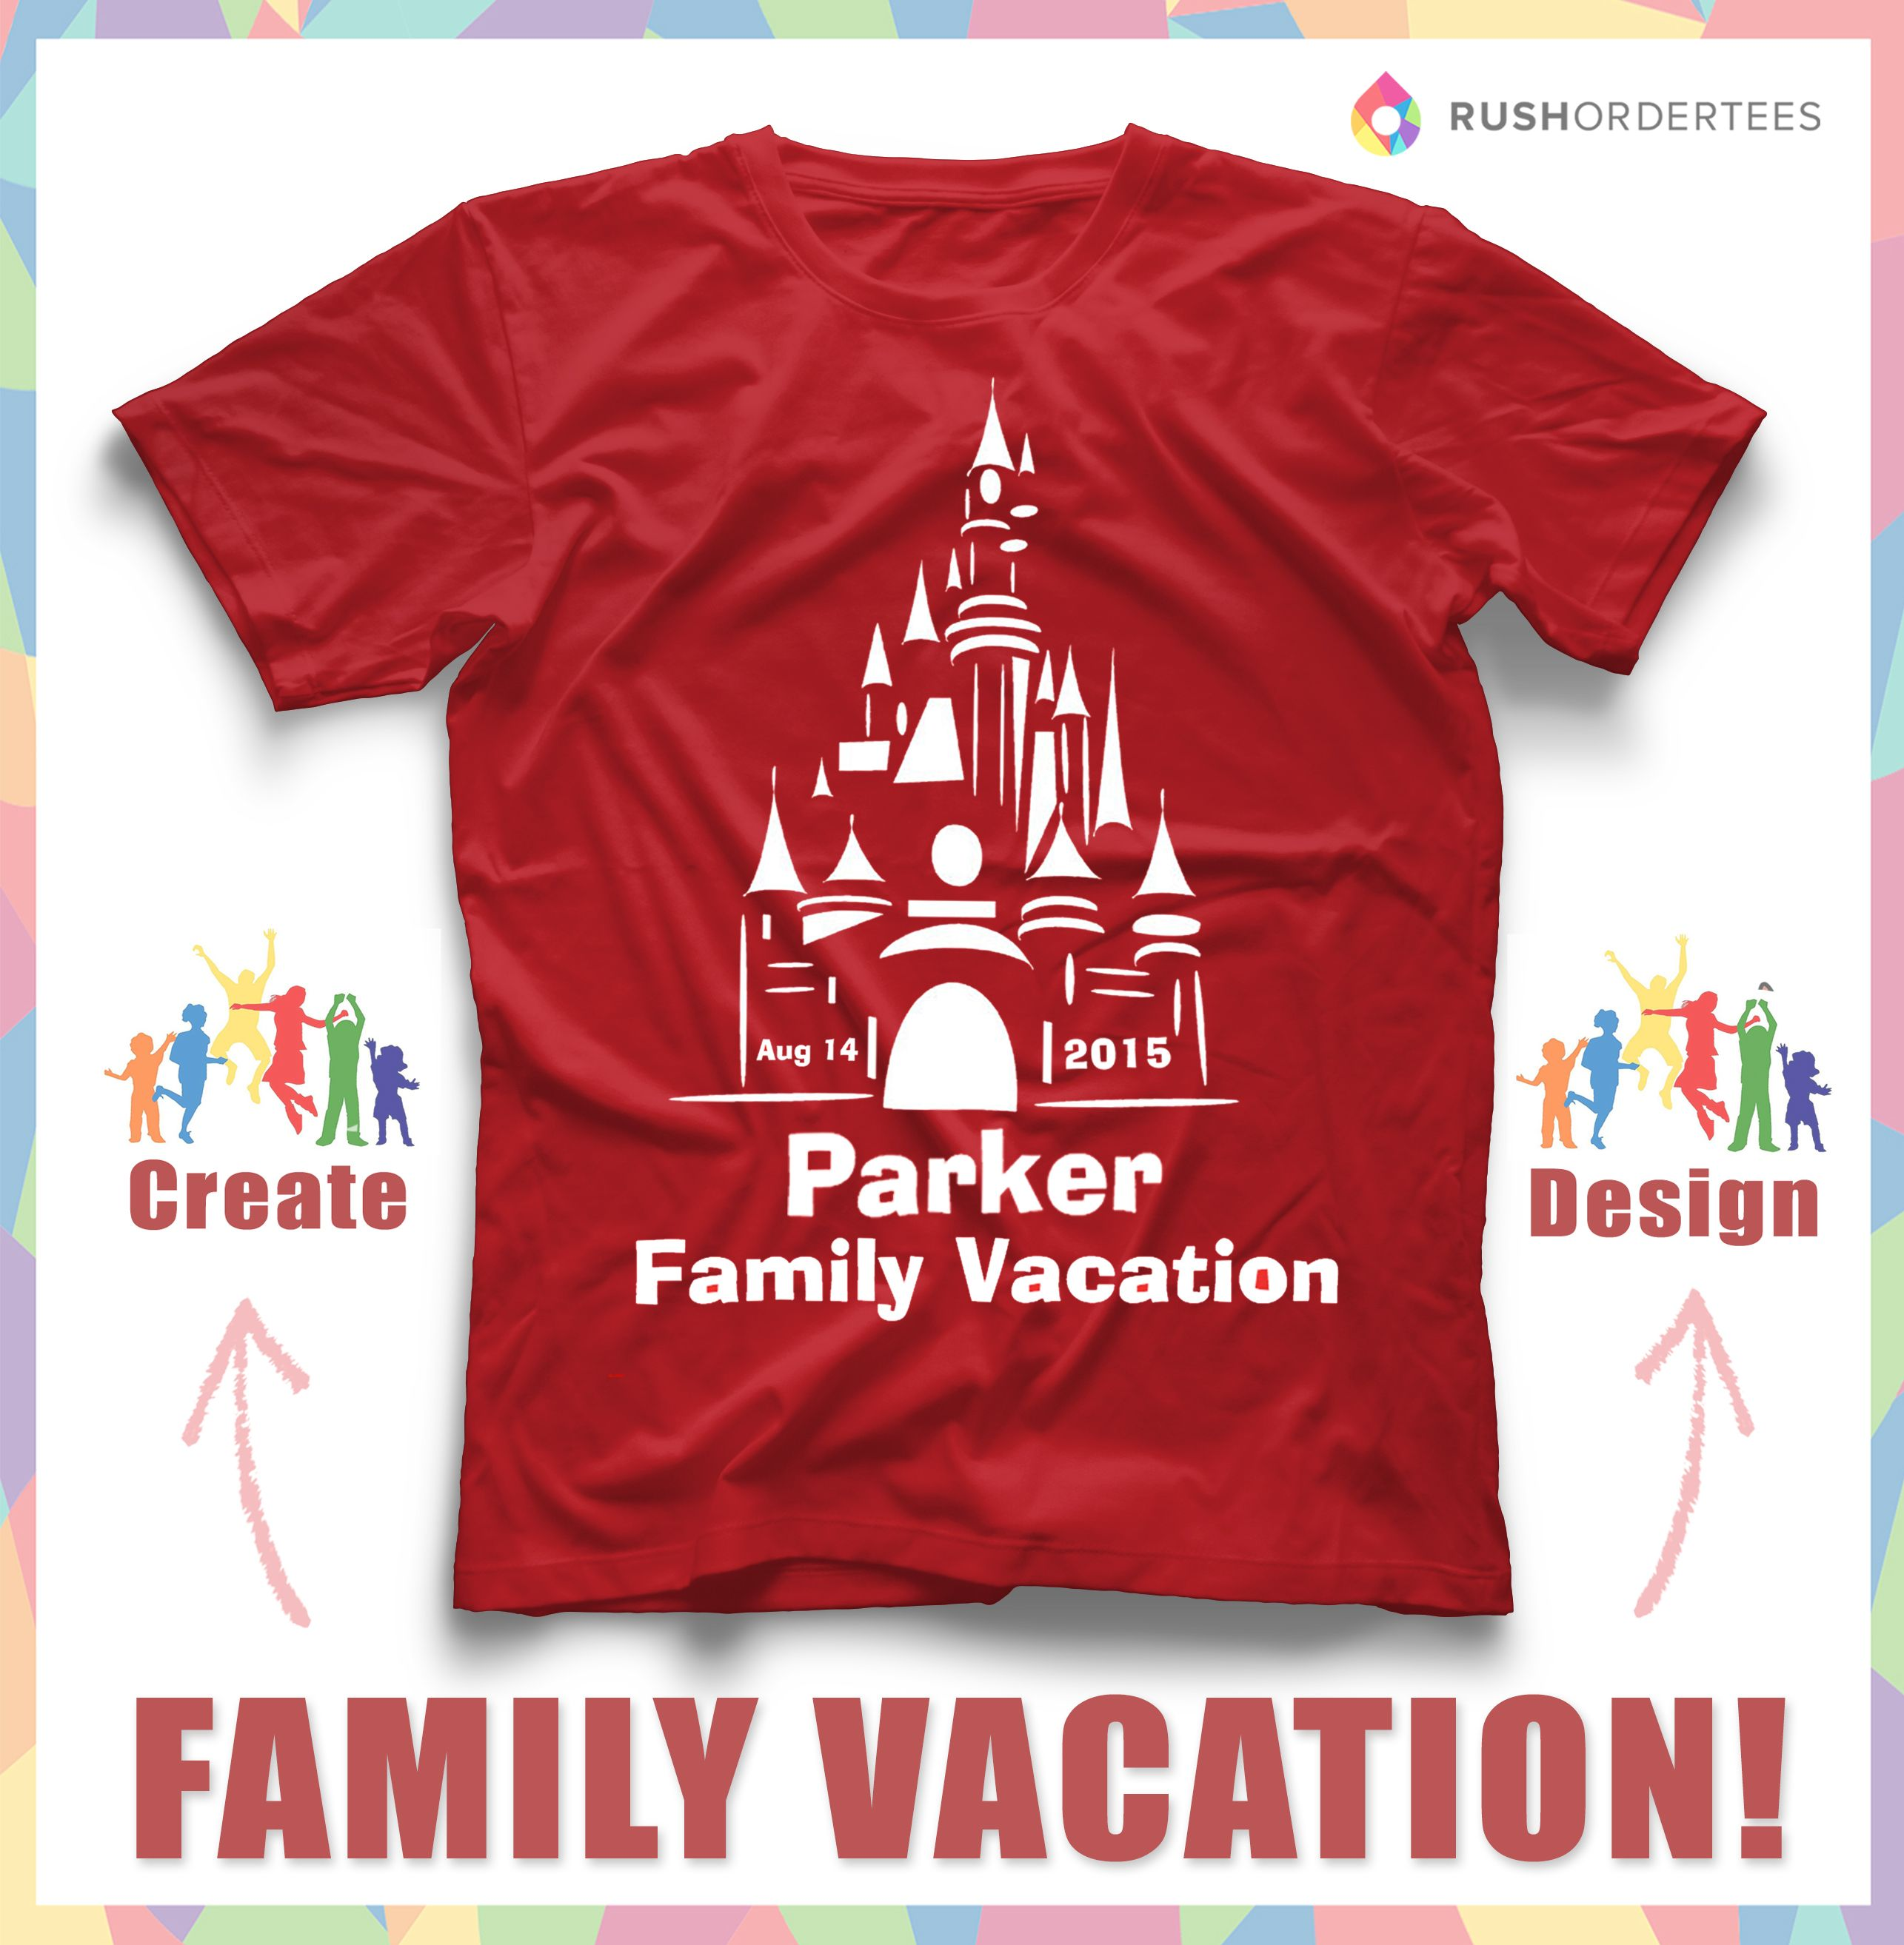 Family vacation custom t-shirt design idea's! Create awesome ...